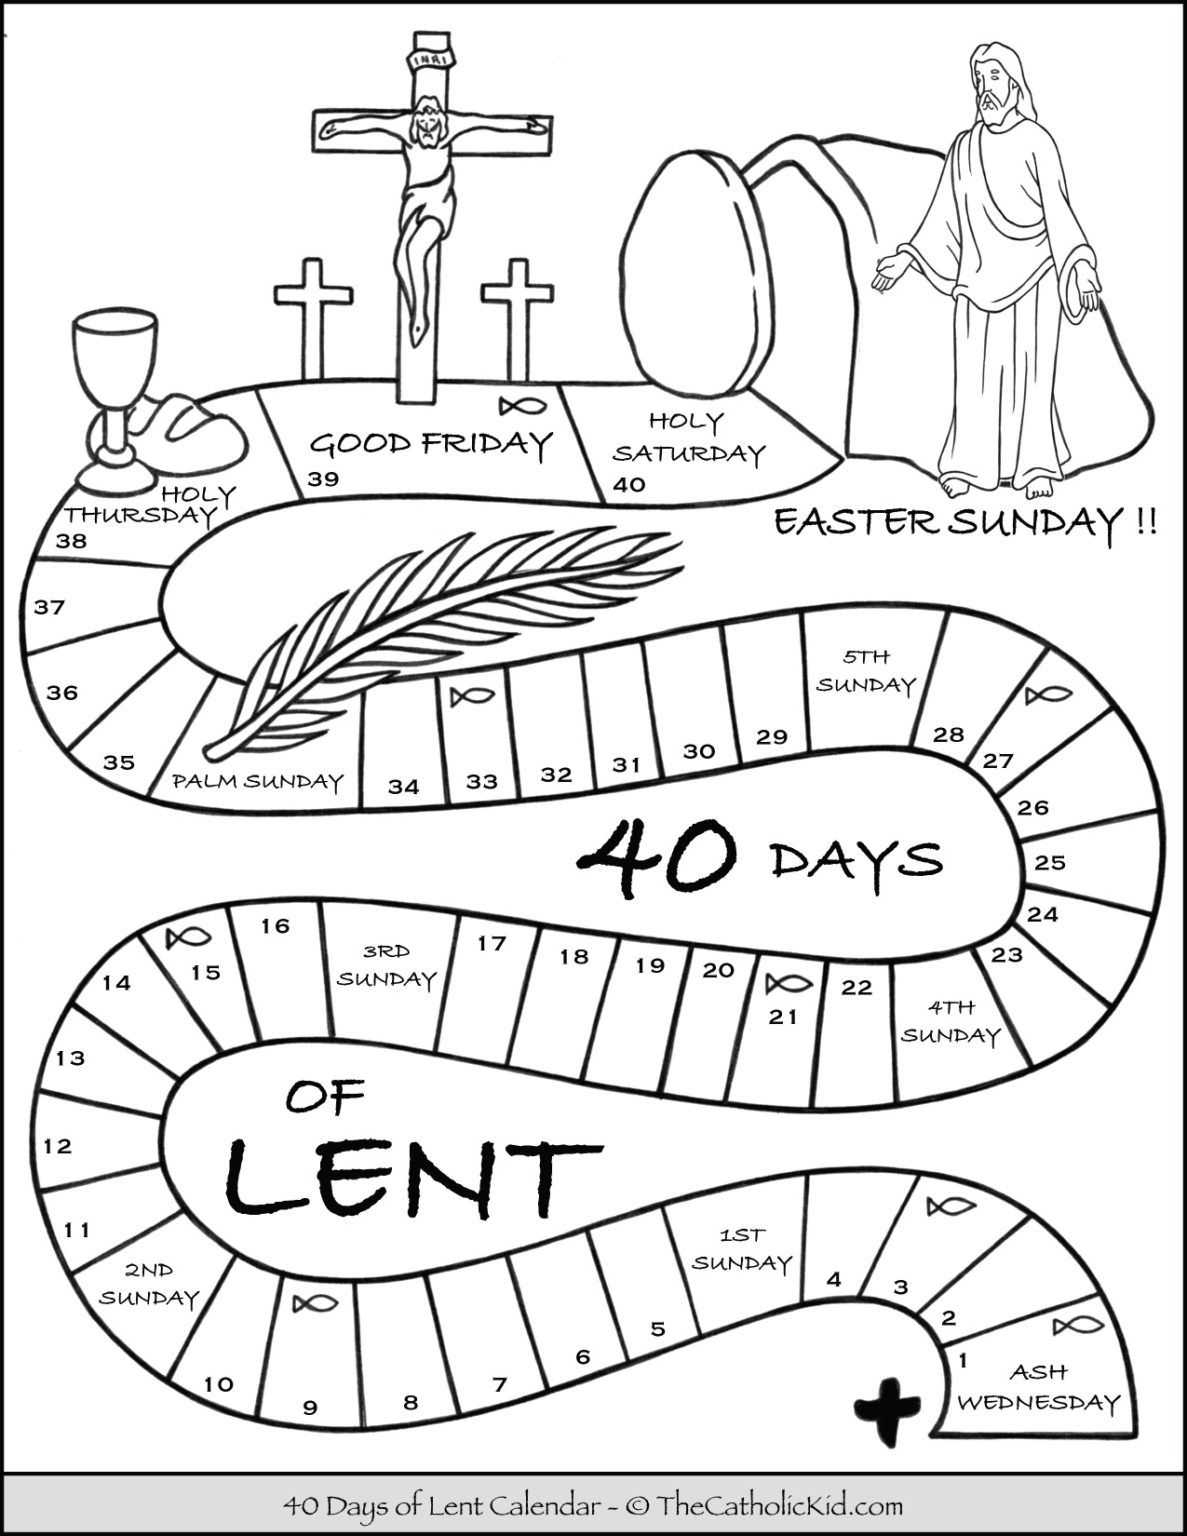 palm sunday Archives - The Catholic Kid - Catholic Coloring Pages and Games  for Children   Catholic coloring [ 1536 x 1187 Pixel ]